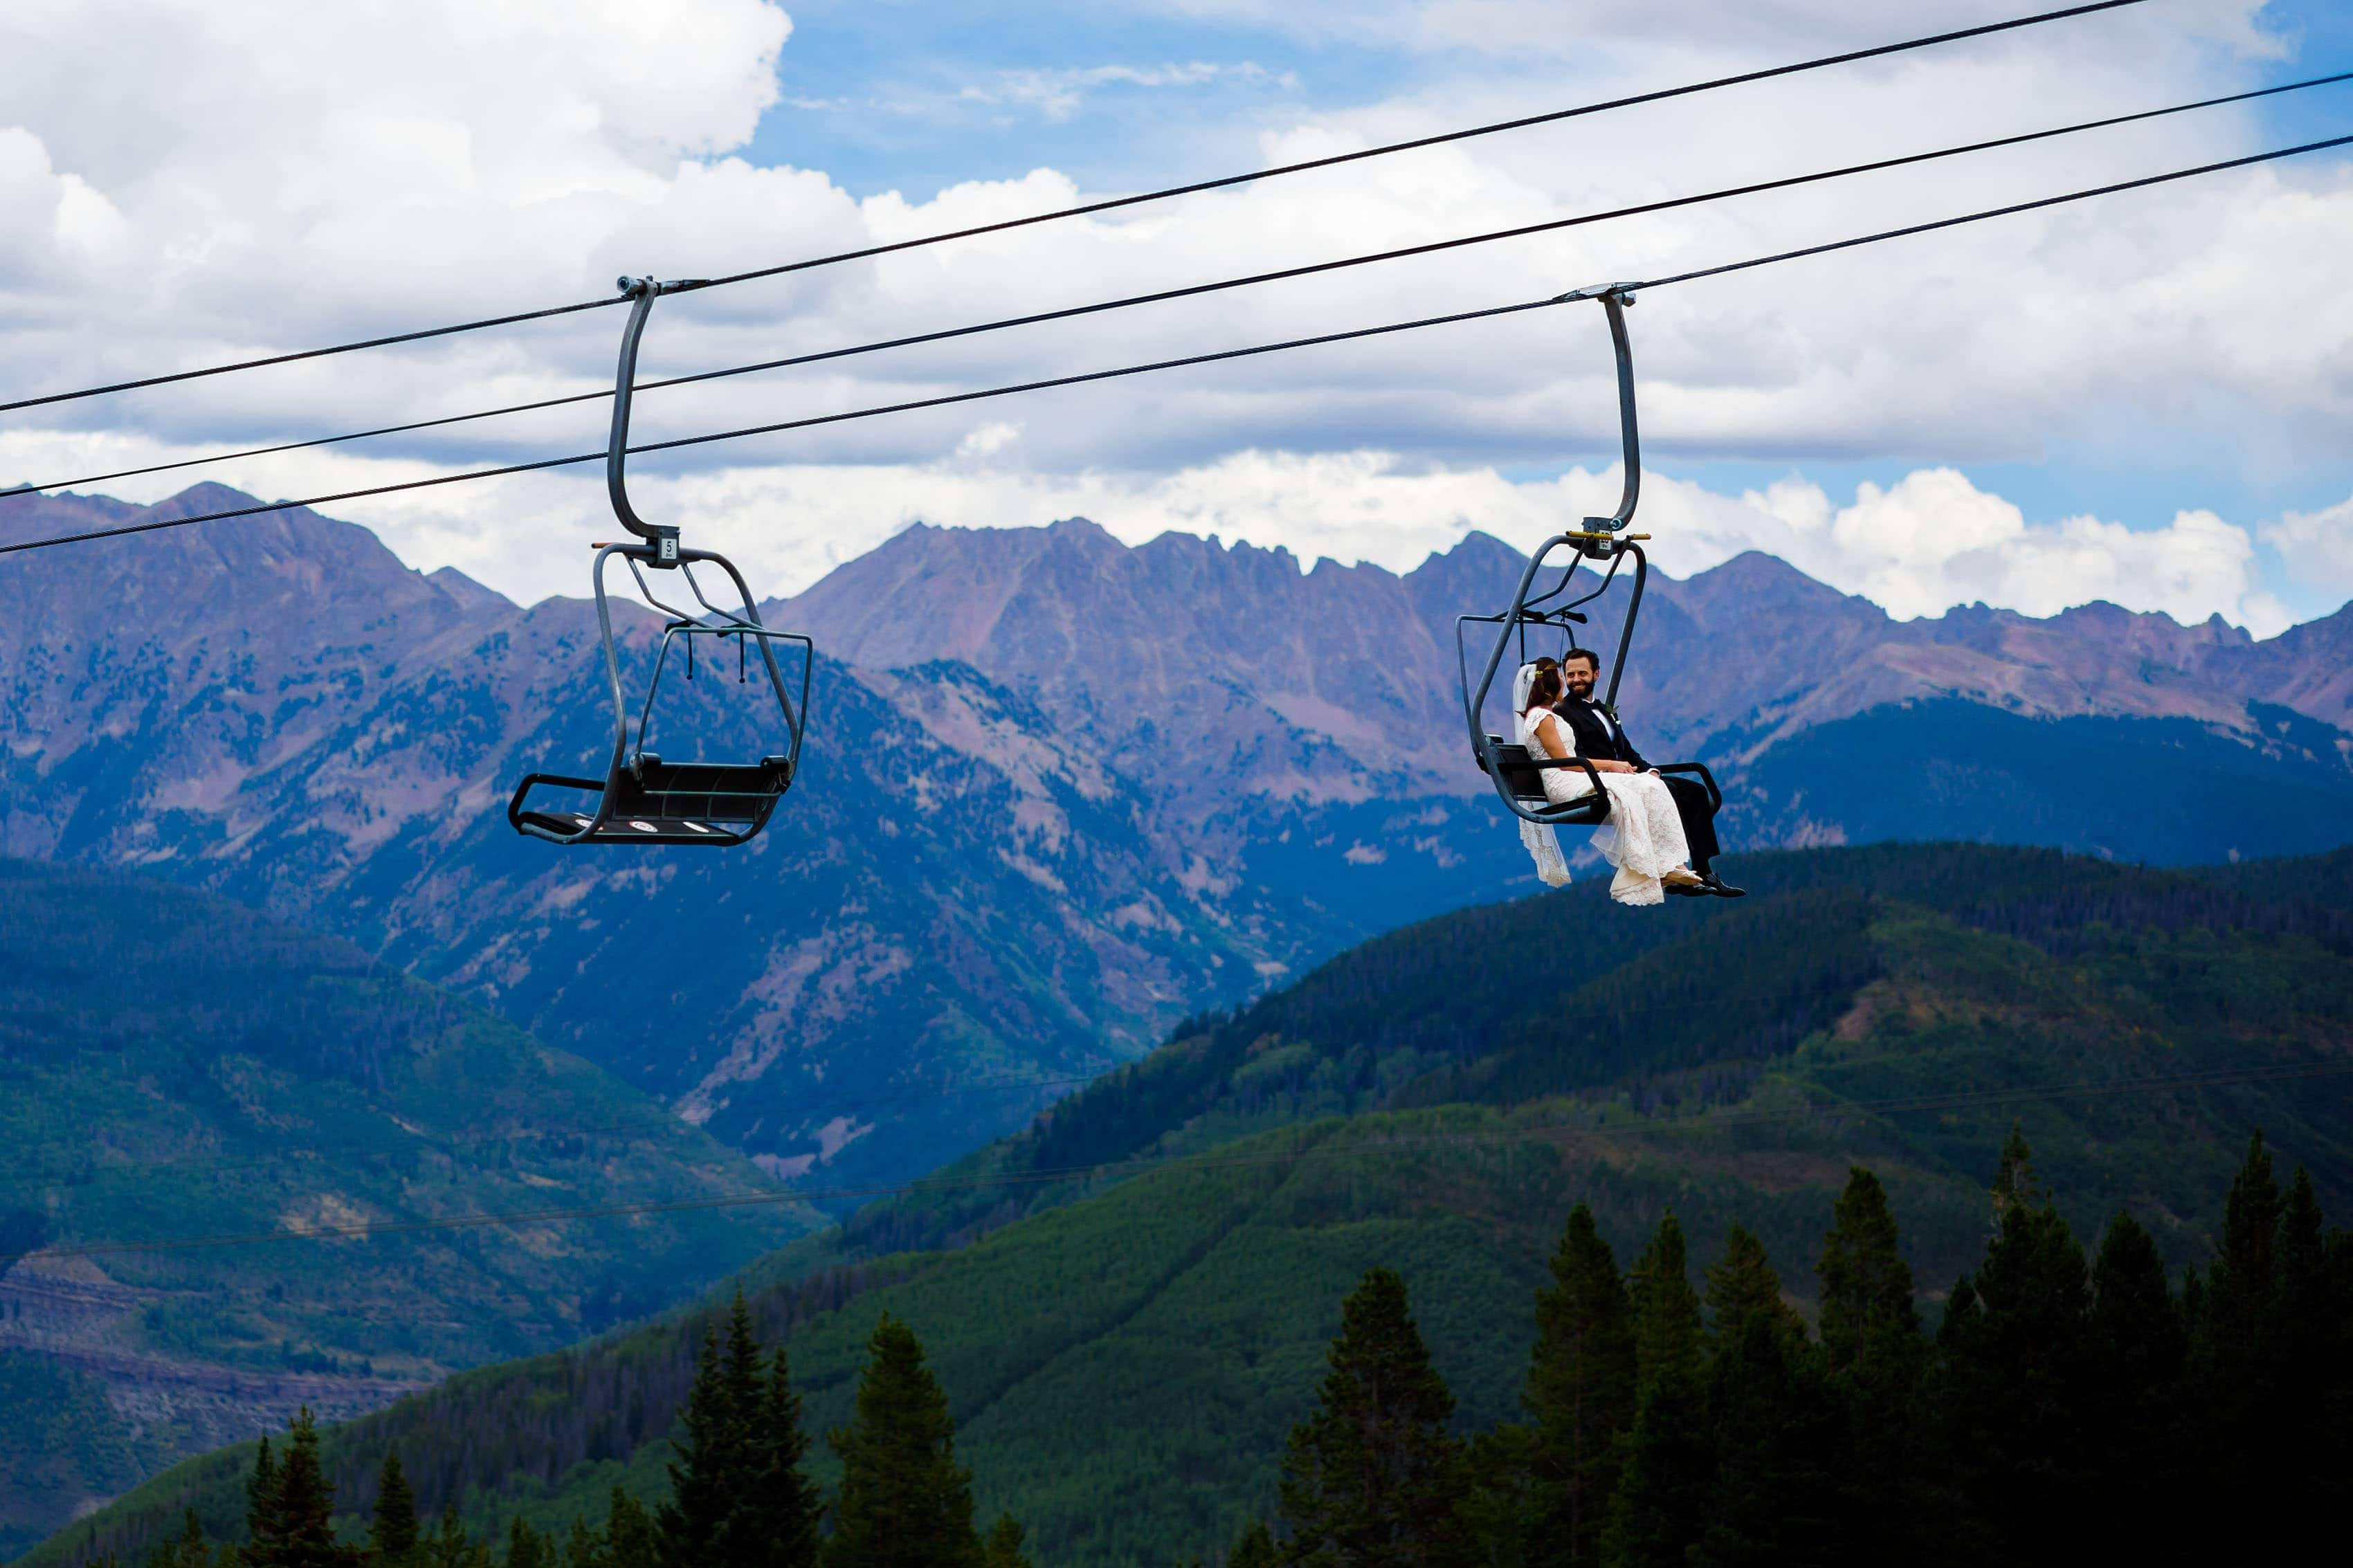 The bride and groom ride the Vail chairlift